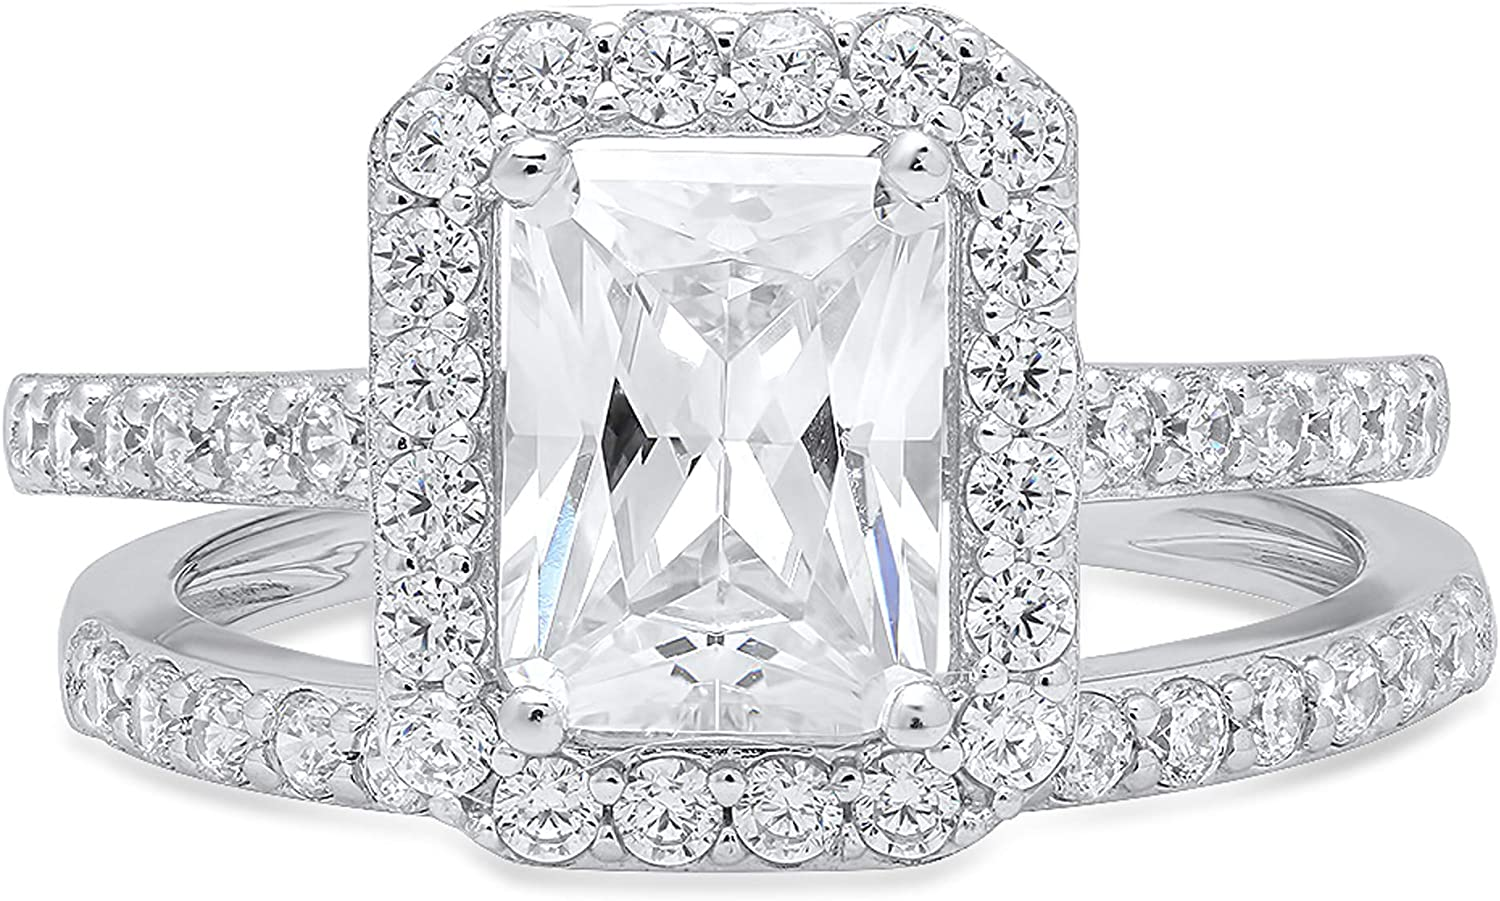 2.14ct Emerald Round Cut Pave Halo Solitaire with Accent VVS1 Ideal D Moissanite & Simulated Diamond Engagement Promise Designer Anniversary Wedding Bridal ring band set 14k White Gold